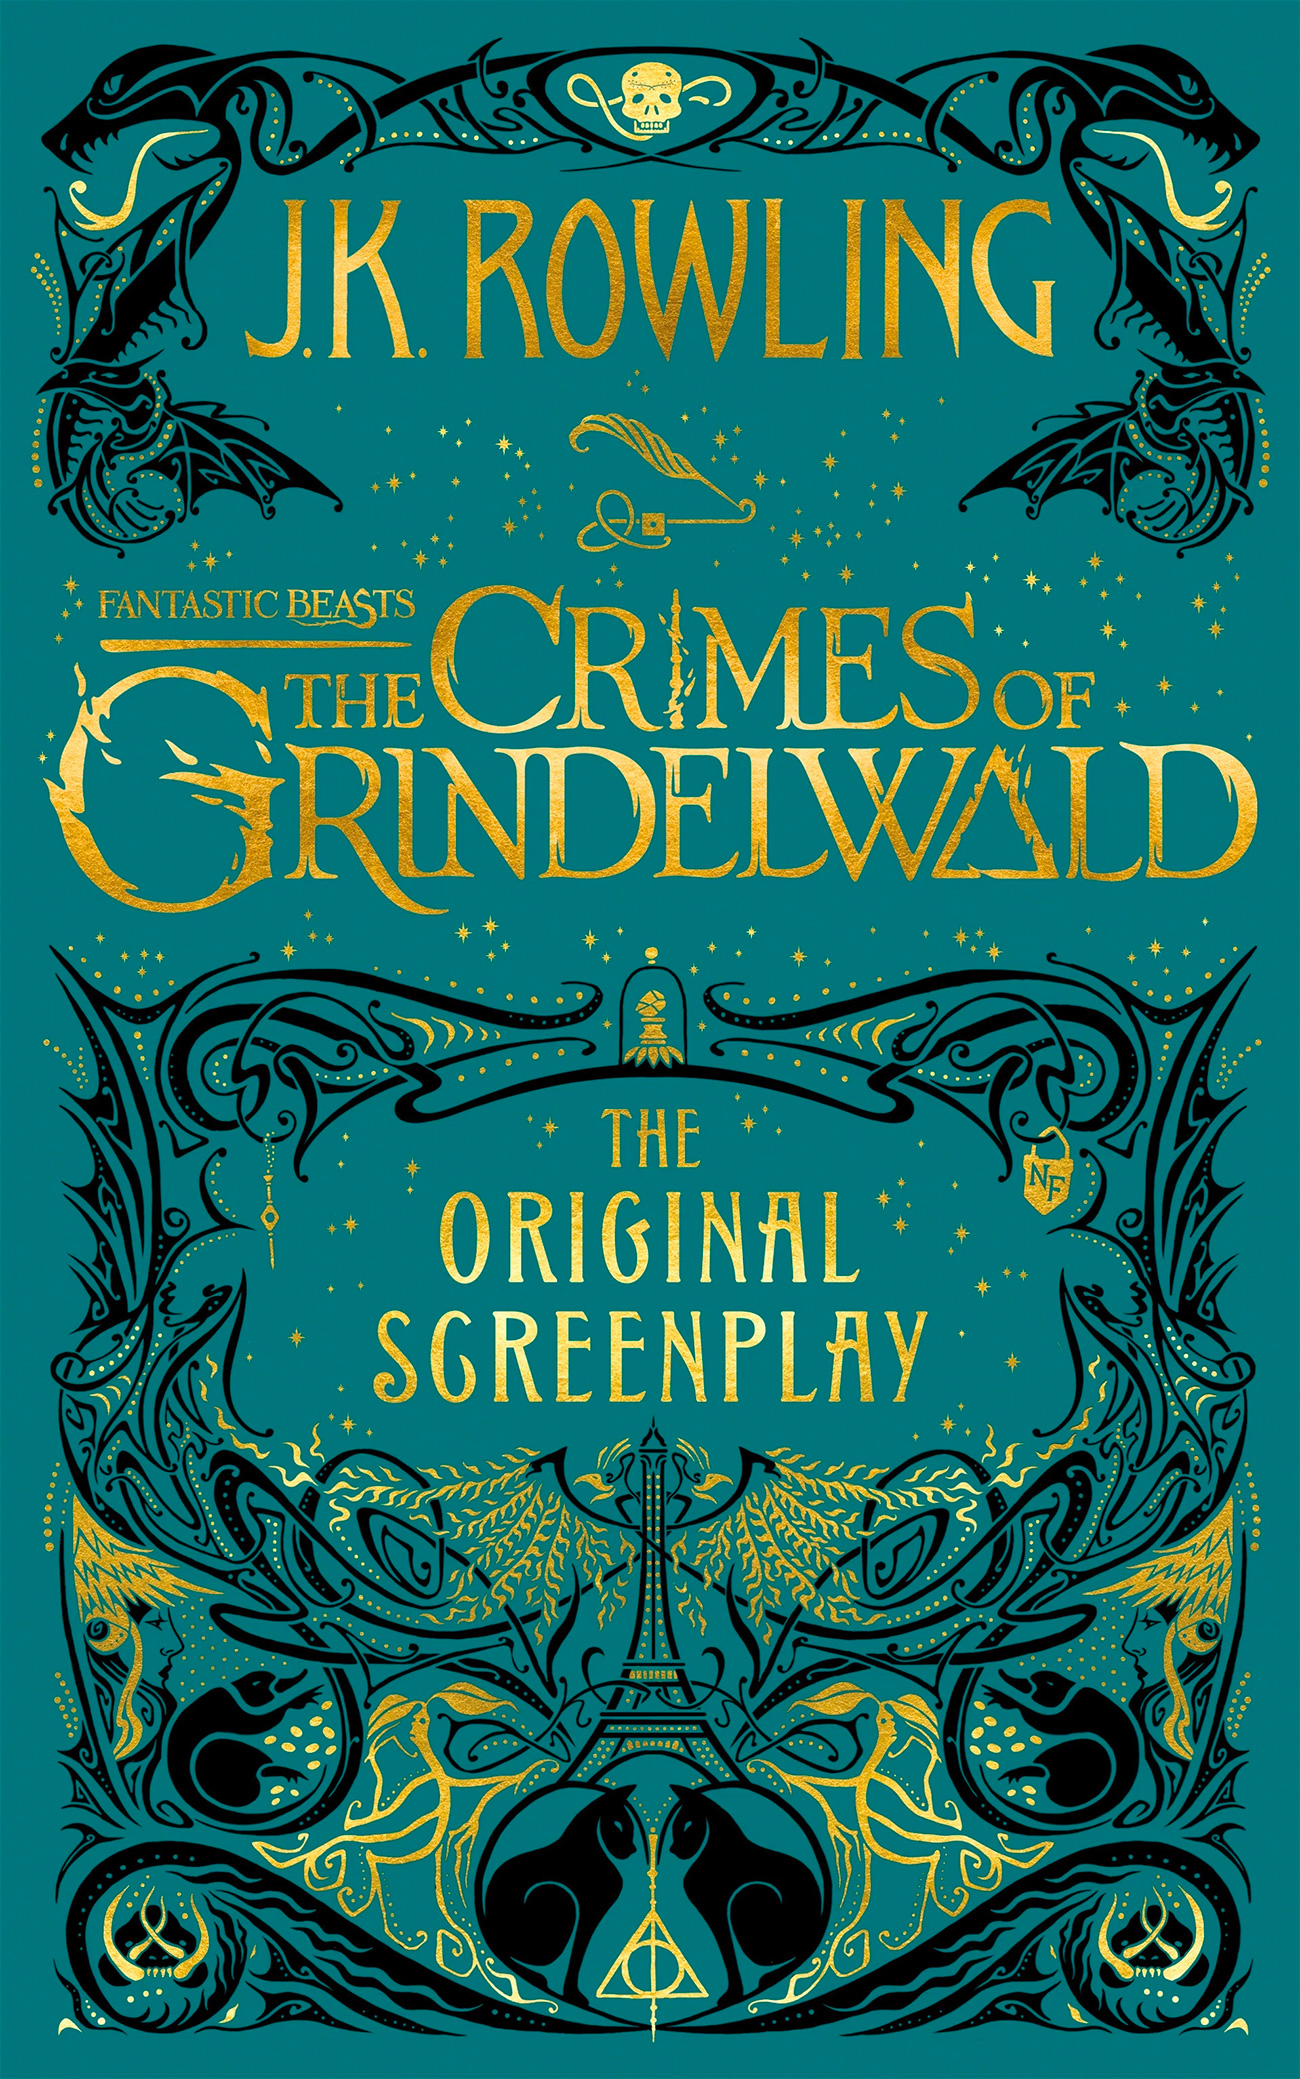 'Crimes of Grindelwald' official screenplay